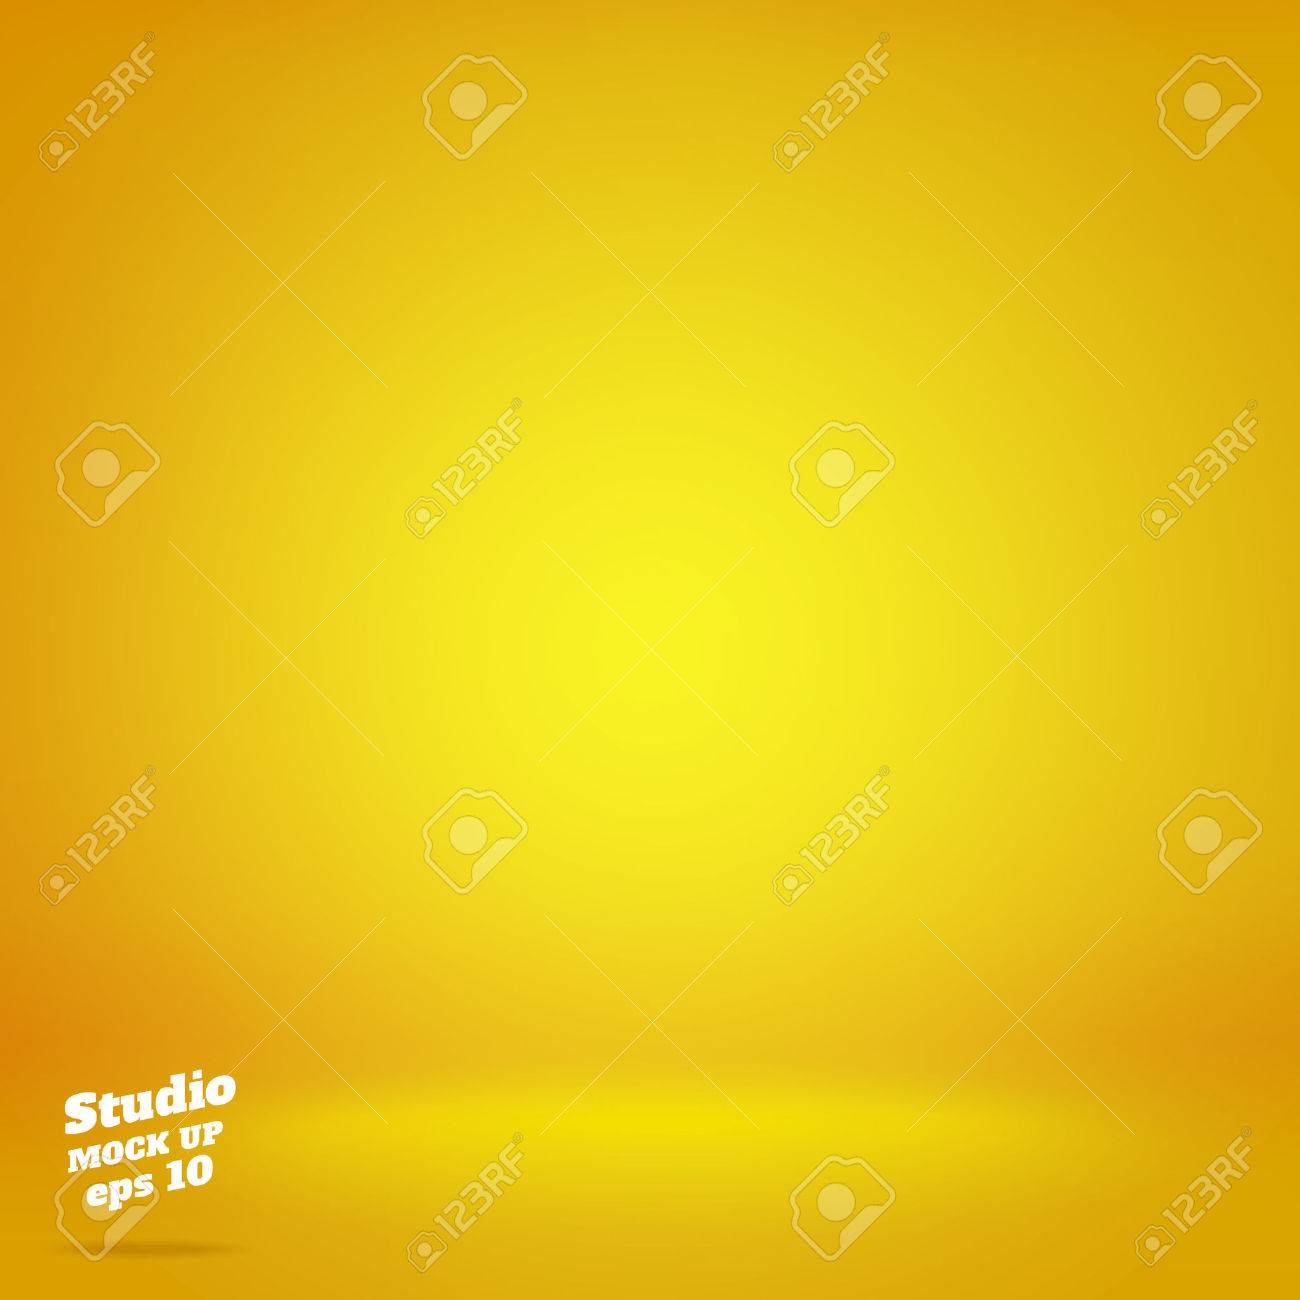 Vector,Empty vivid lighting yellow studio room background ,Template mock up for display or montage of product,Business backdrop. - 59621428